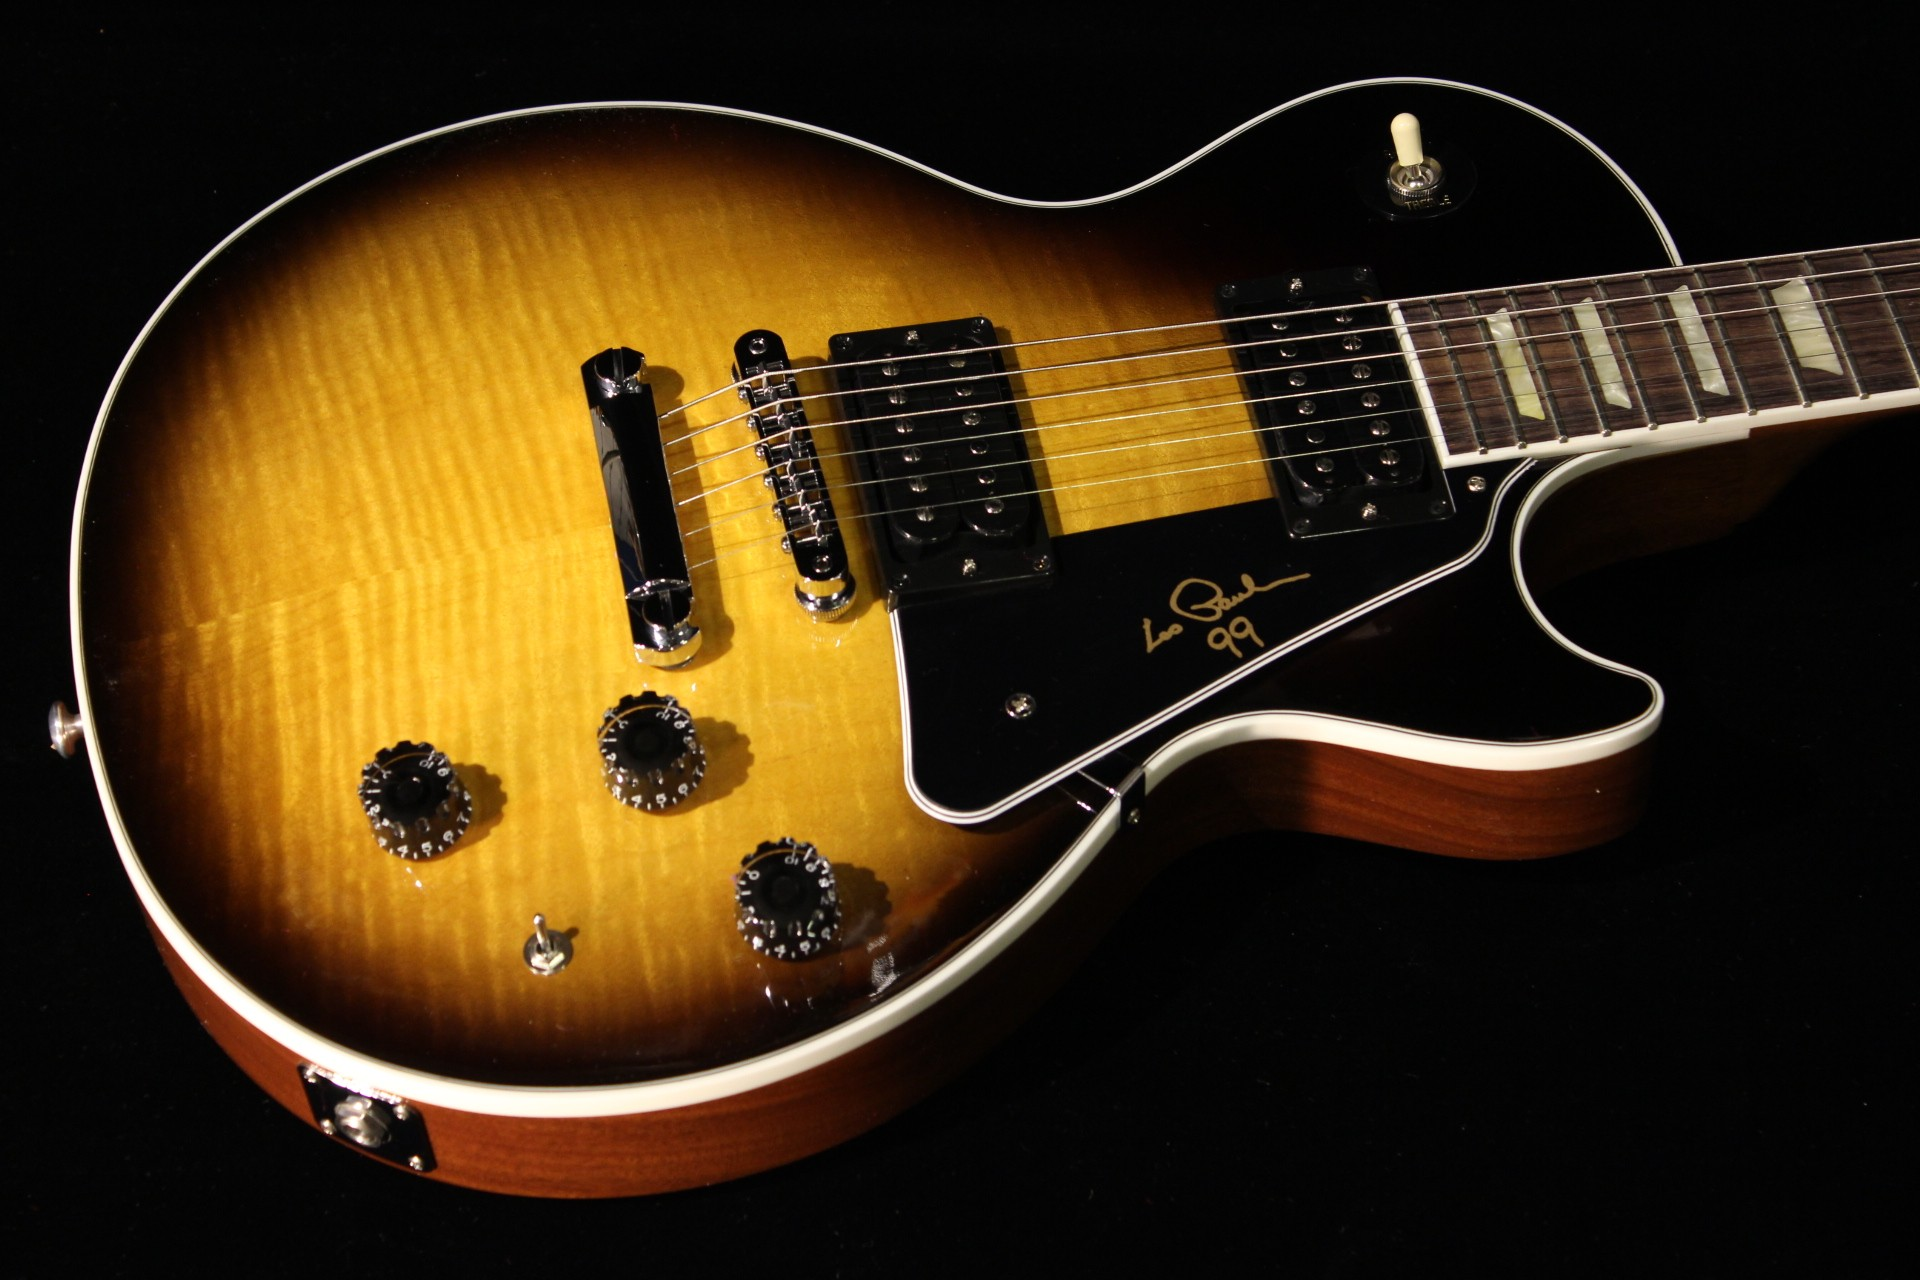 gibson les paul signature 2014 vintage sunburst sn 140057803 gino guitars. Black Bedroom Furniture Sets. Home Design Ideas